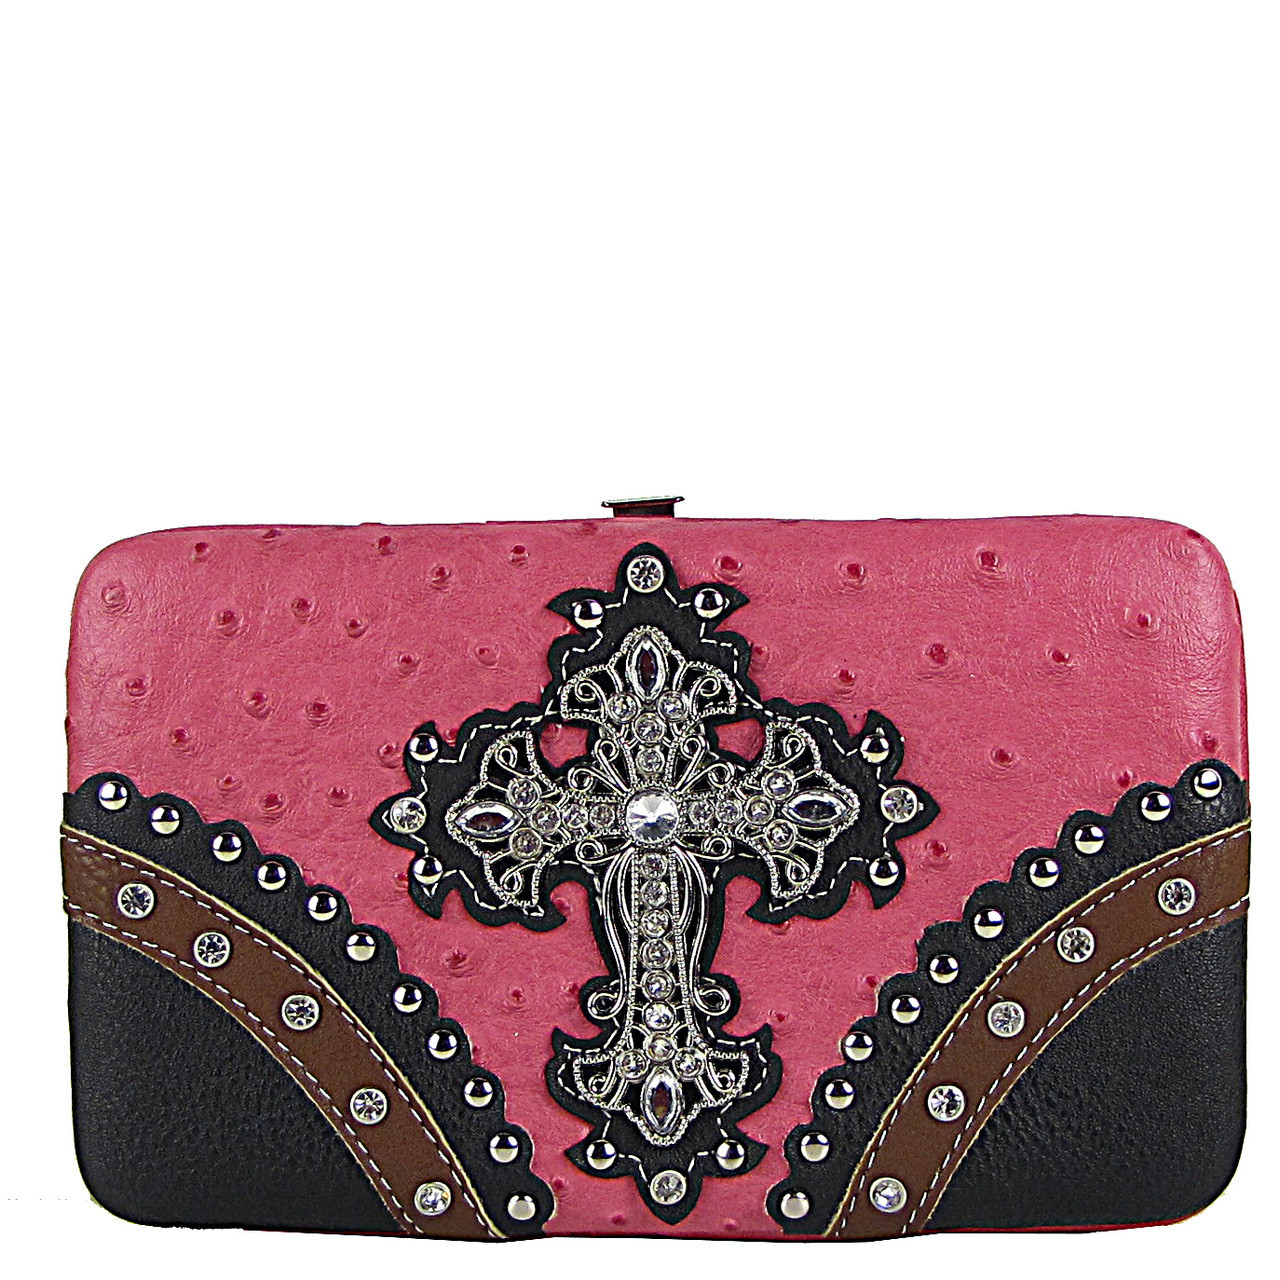 HOT PINK OSTRICH STUDDED RHINESTONE CROSS FLAT THICK WALLET FW2-04106HPK